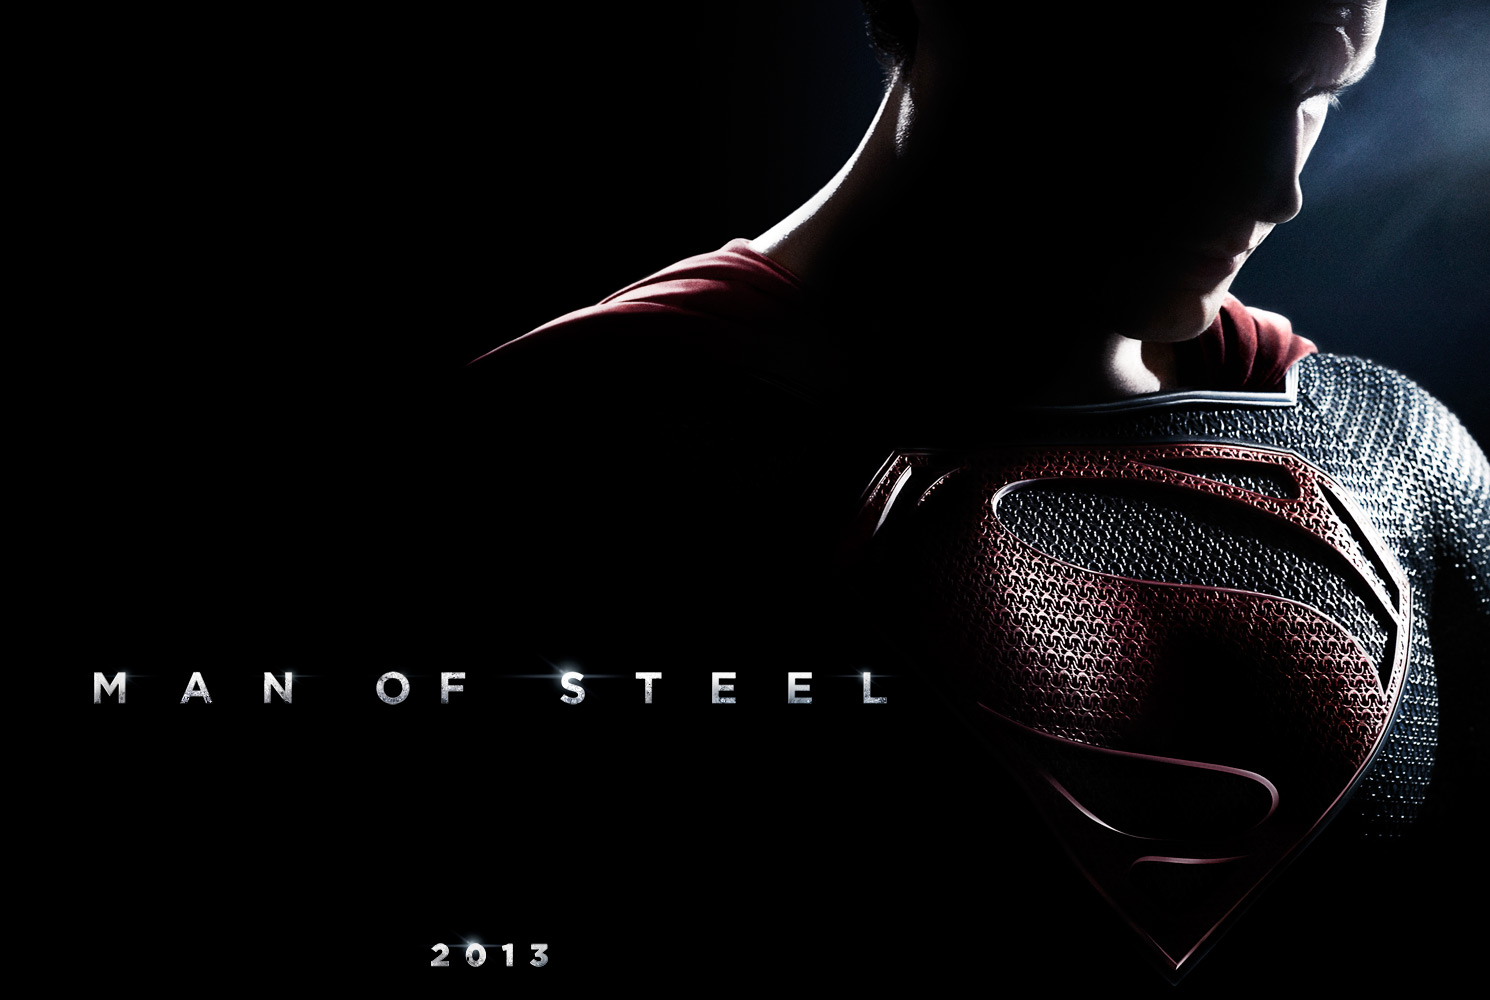 Man of Steel – Official Trailer 2